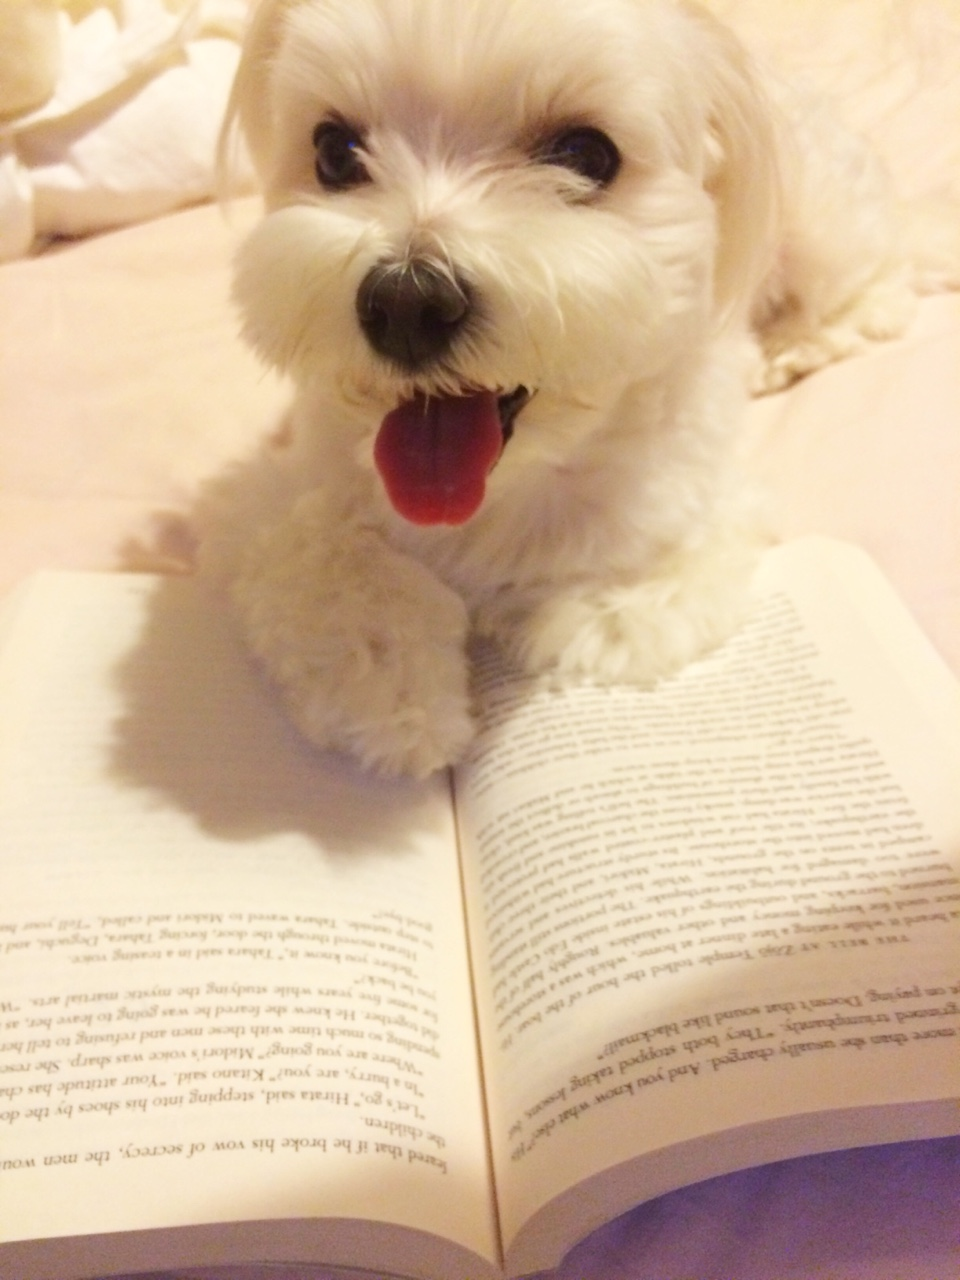 maltese-dog-reading-book-via-shafinaserendipitously-on-tumblr.jpg